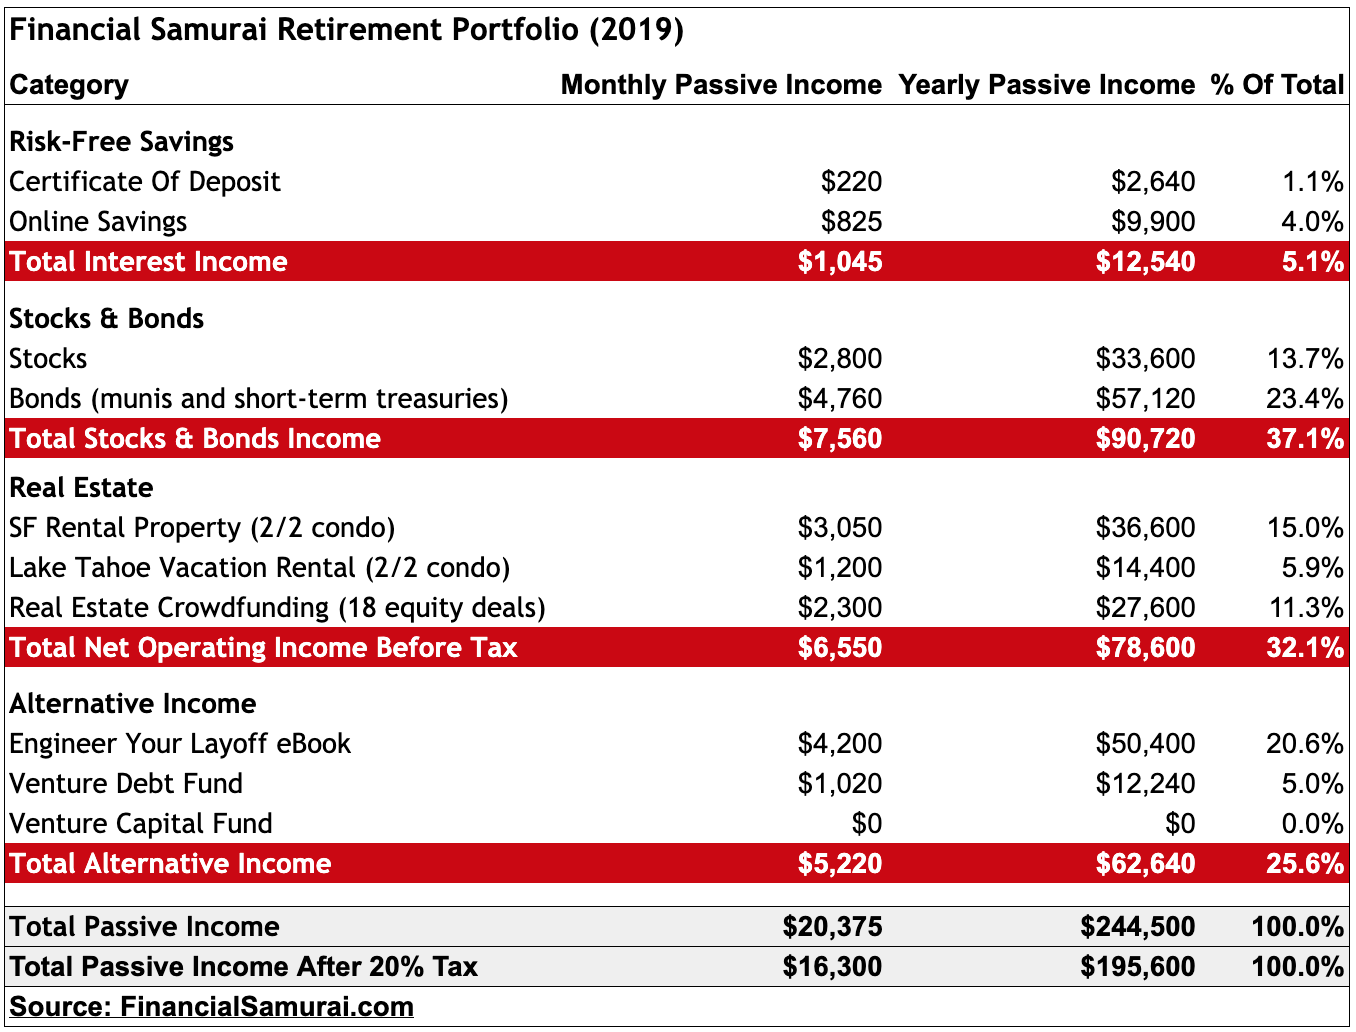 Financial Samurai Passive Income Streams, Retirement Portfolio 2019